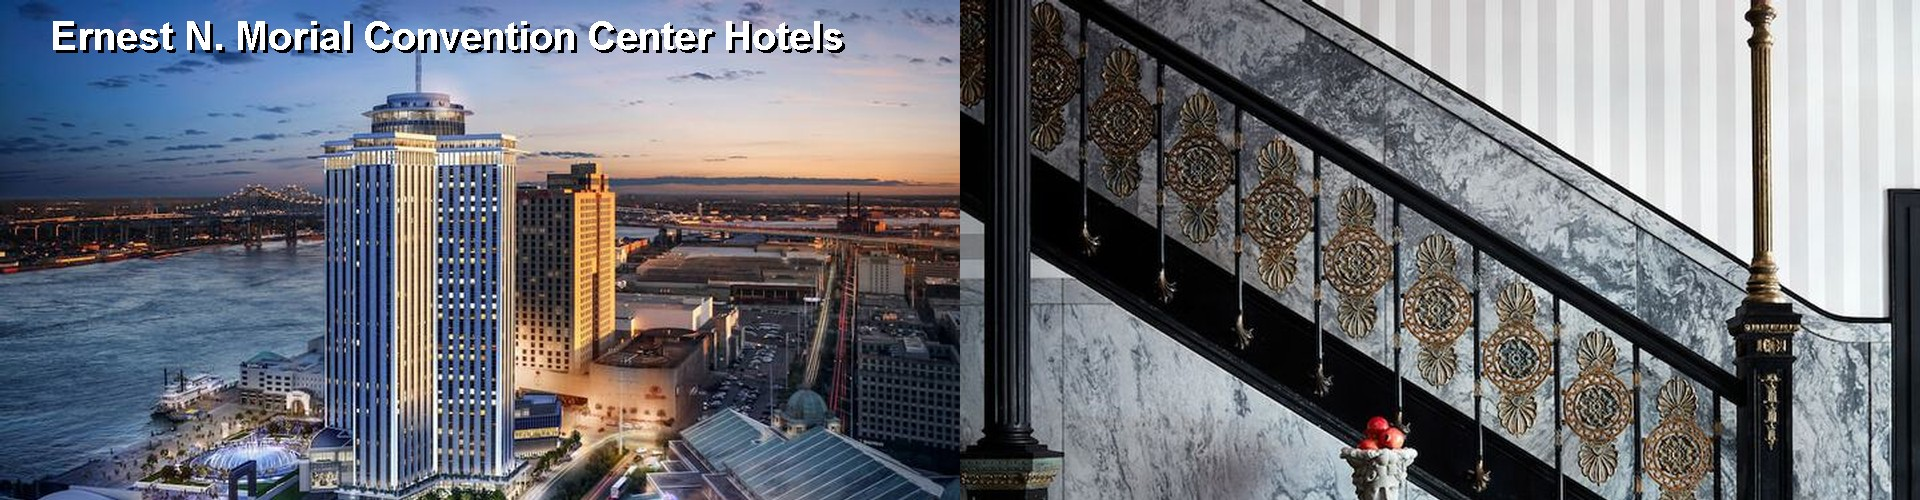 $45+ Hotels Near Ernest N. Morial Convention Center in New Orleans